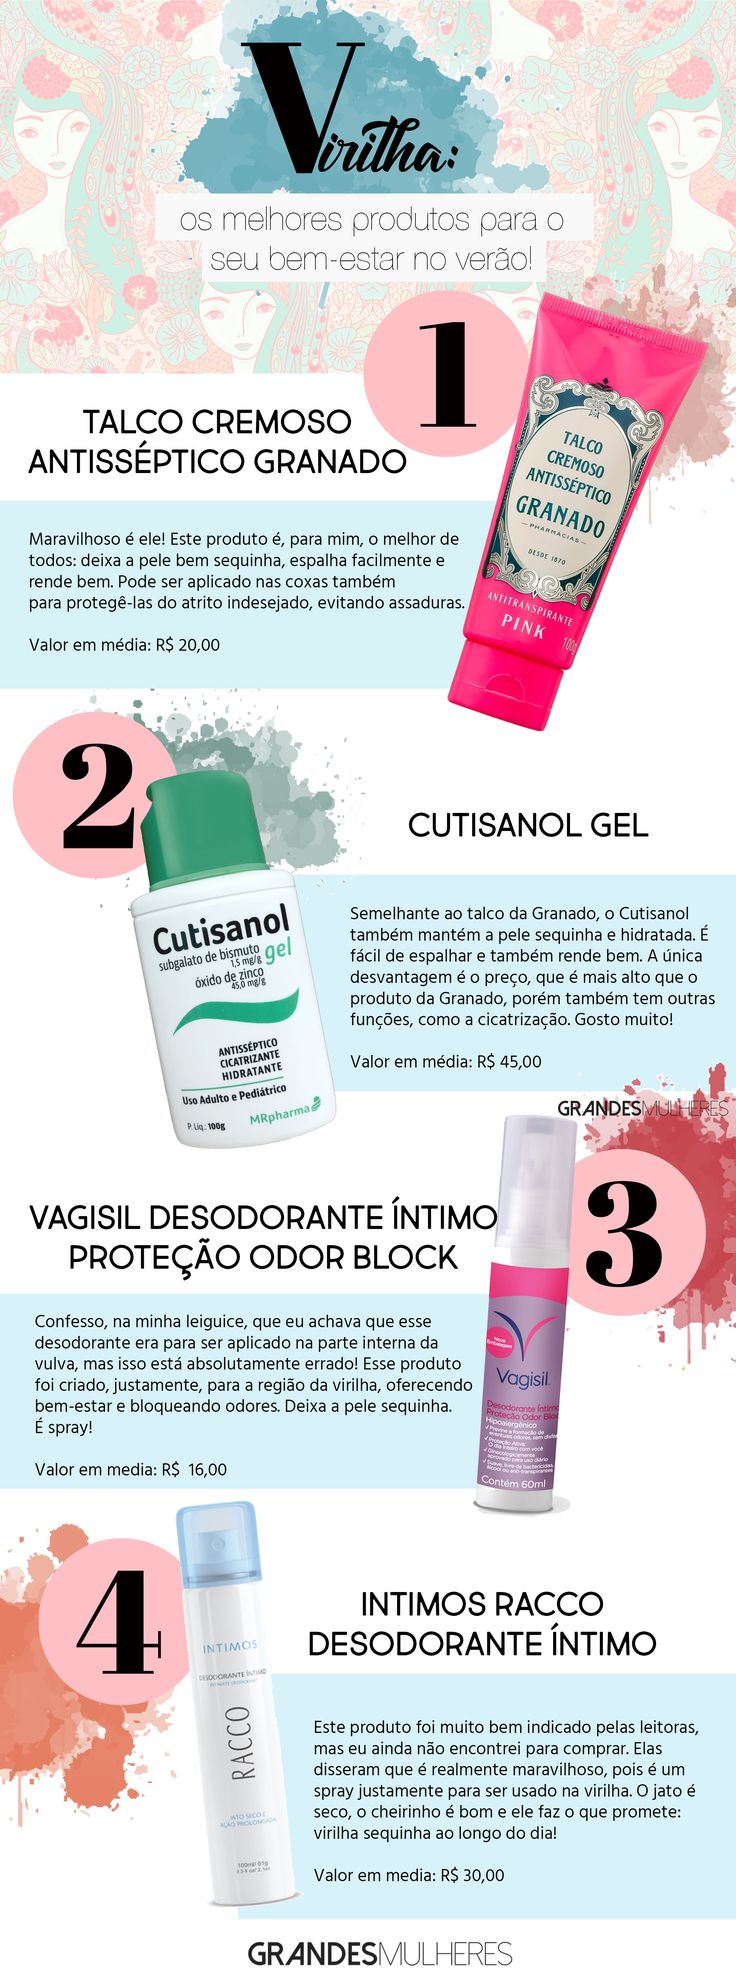 8 best Hair & Beauty images on Pinterest | Beauty tips, Collagen and ...